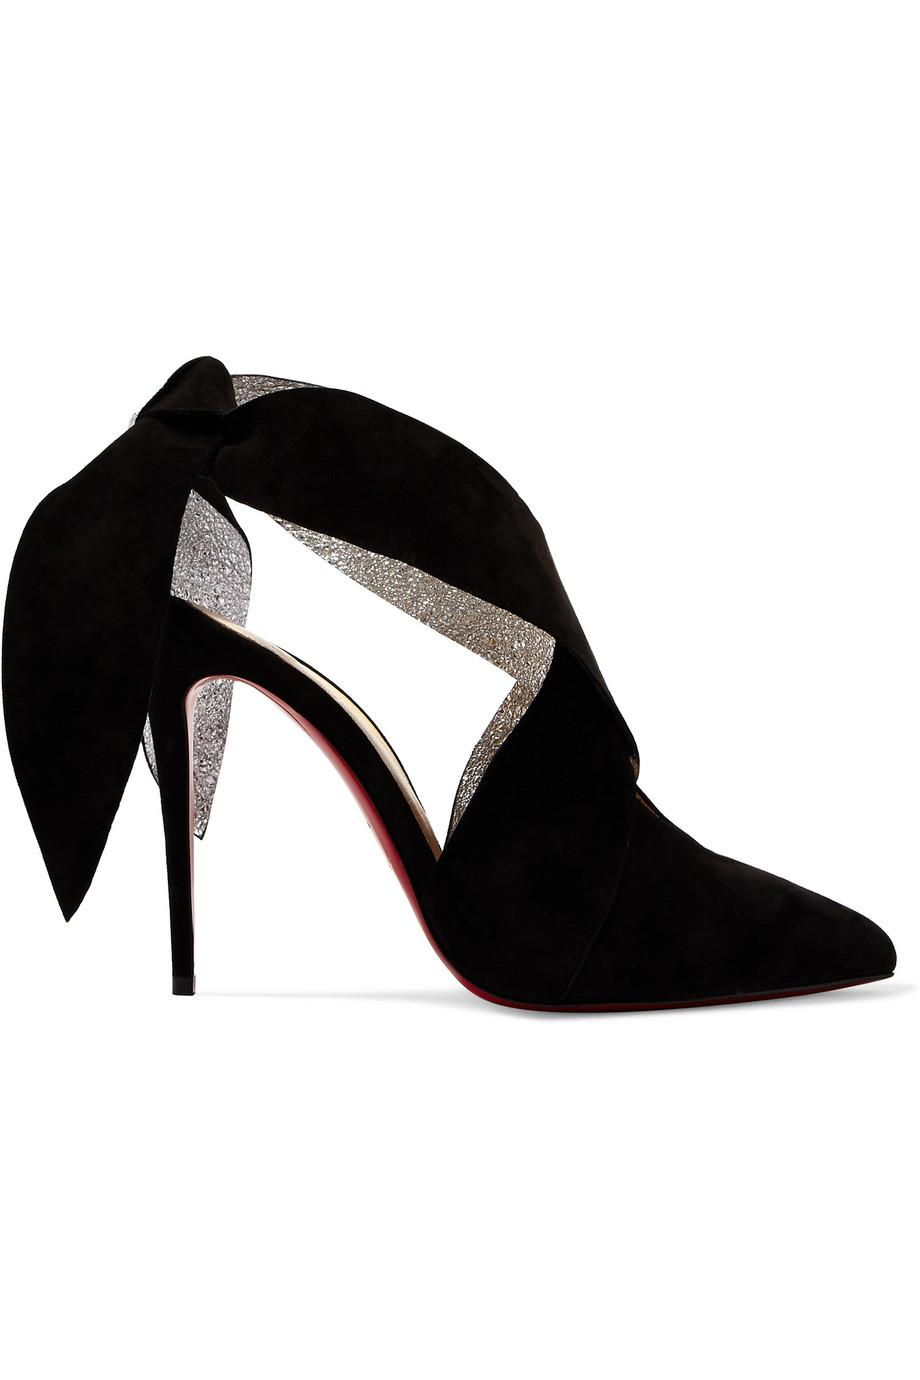 + Roland Mouret Ramour 100 Suede And Metallic Textured-leather Pumps - Black Christian Louboutin S6ERoWA